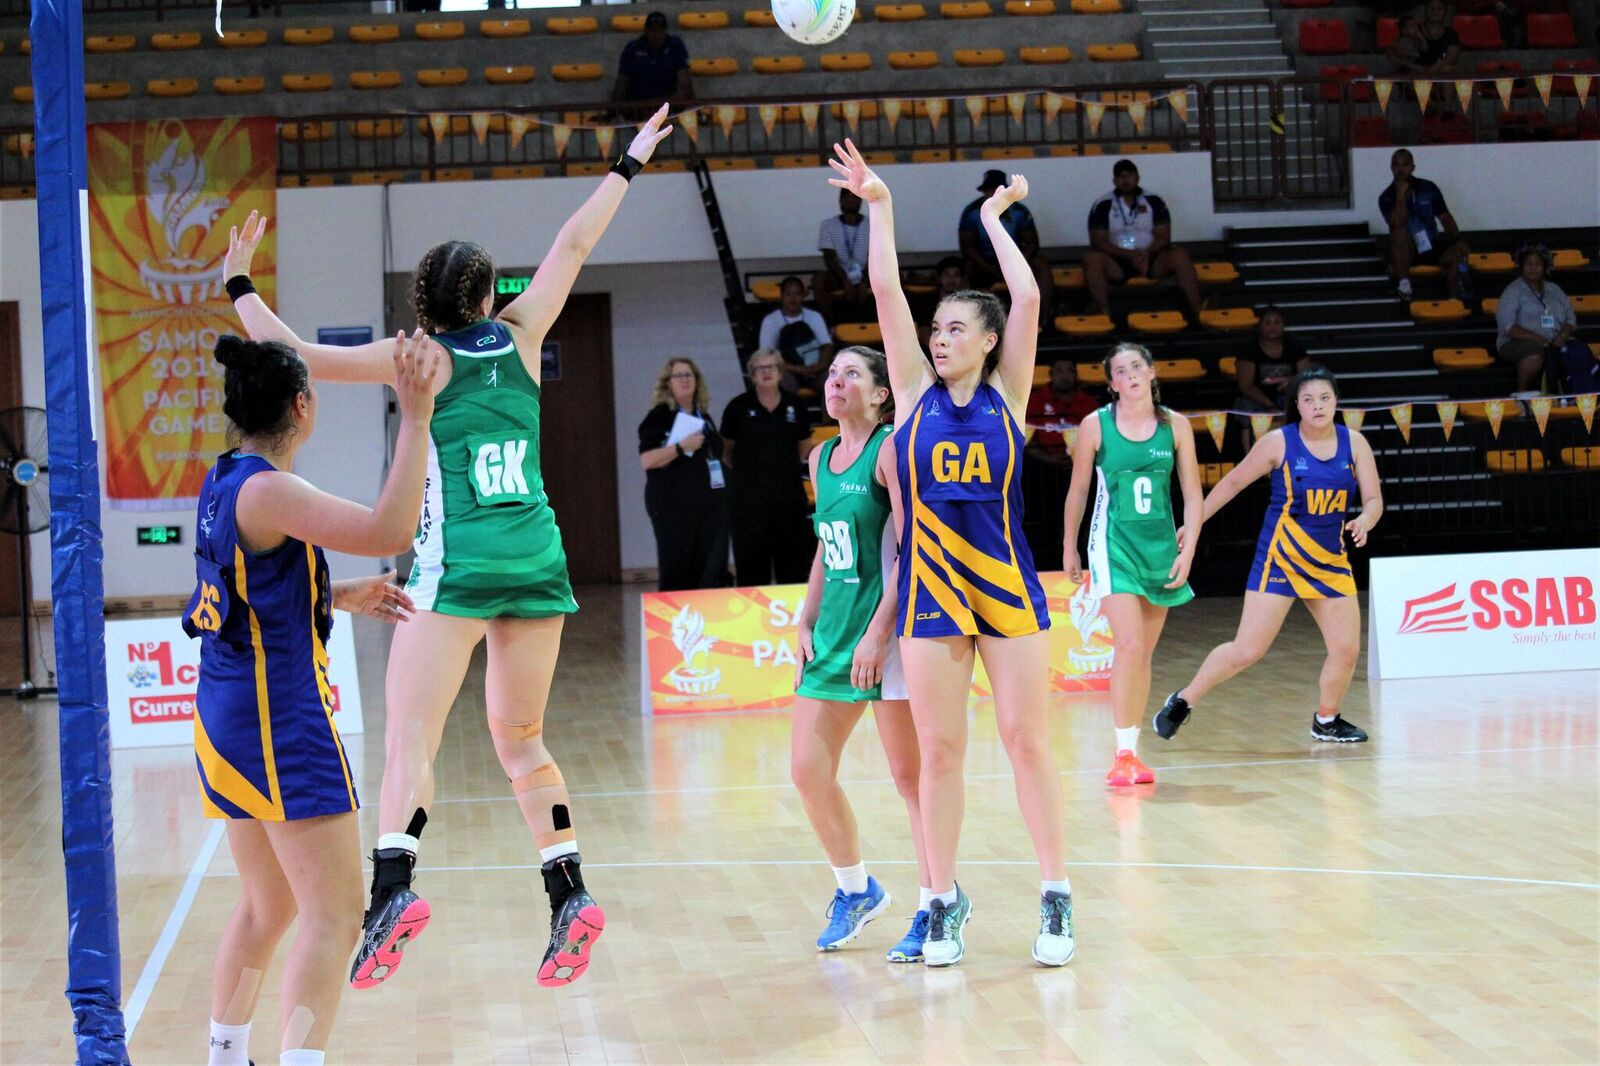 The minnows of Tokelau and Norfolk Islands faced off in the netball at the Multi-Sport Centre ©Games News Service